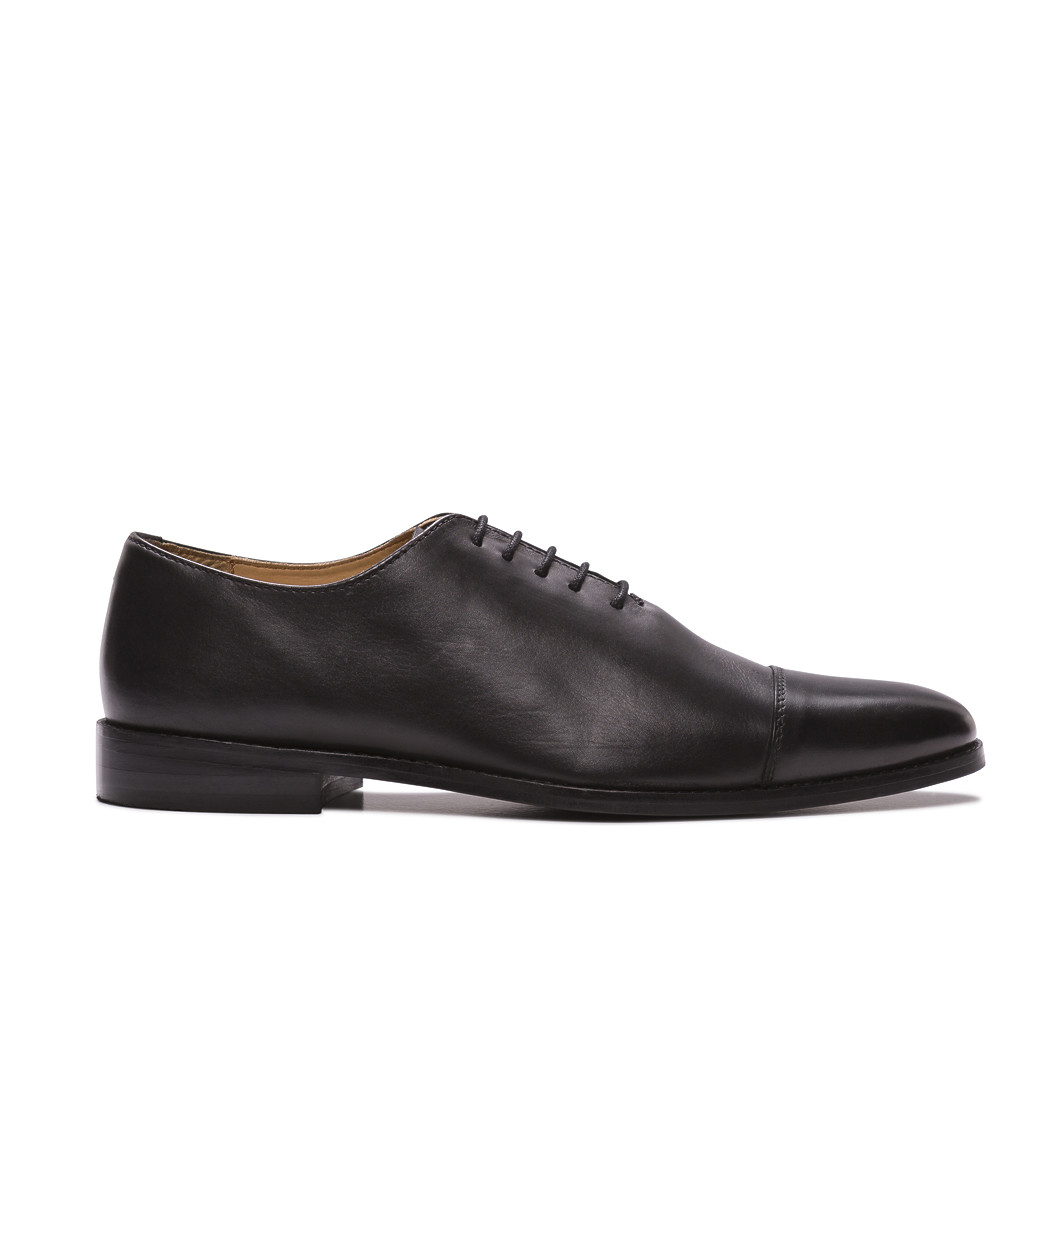 5cd4088d50bf Van Heusen Men's Shoe Oxford Plain Black | Shoes | Van Heusen ...